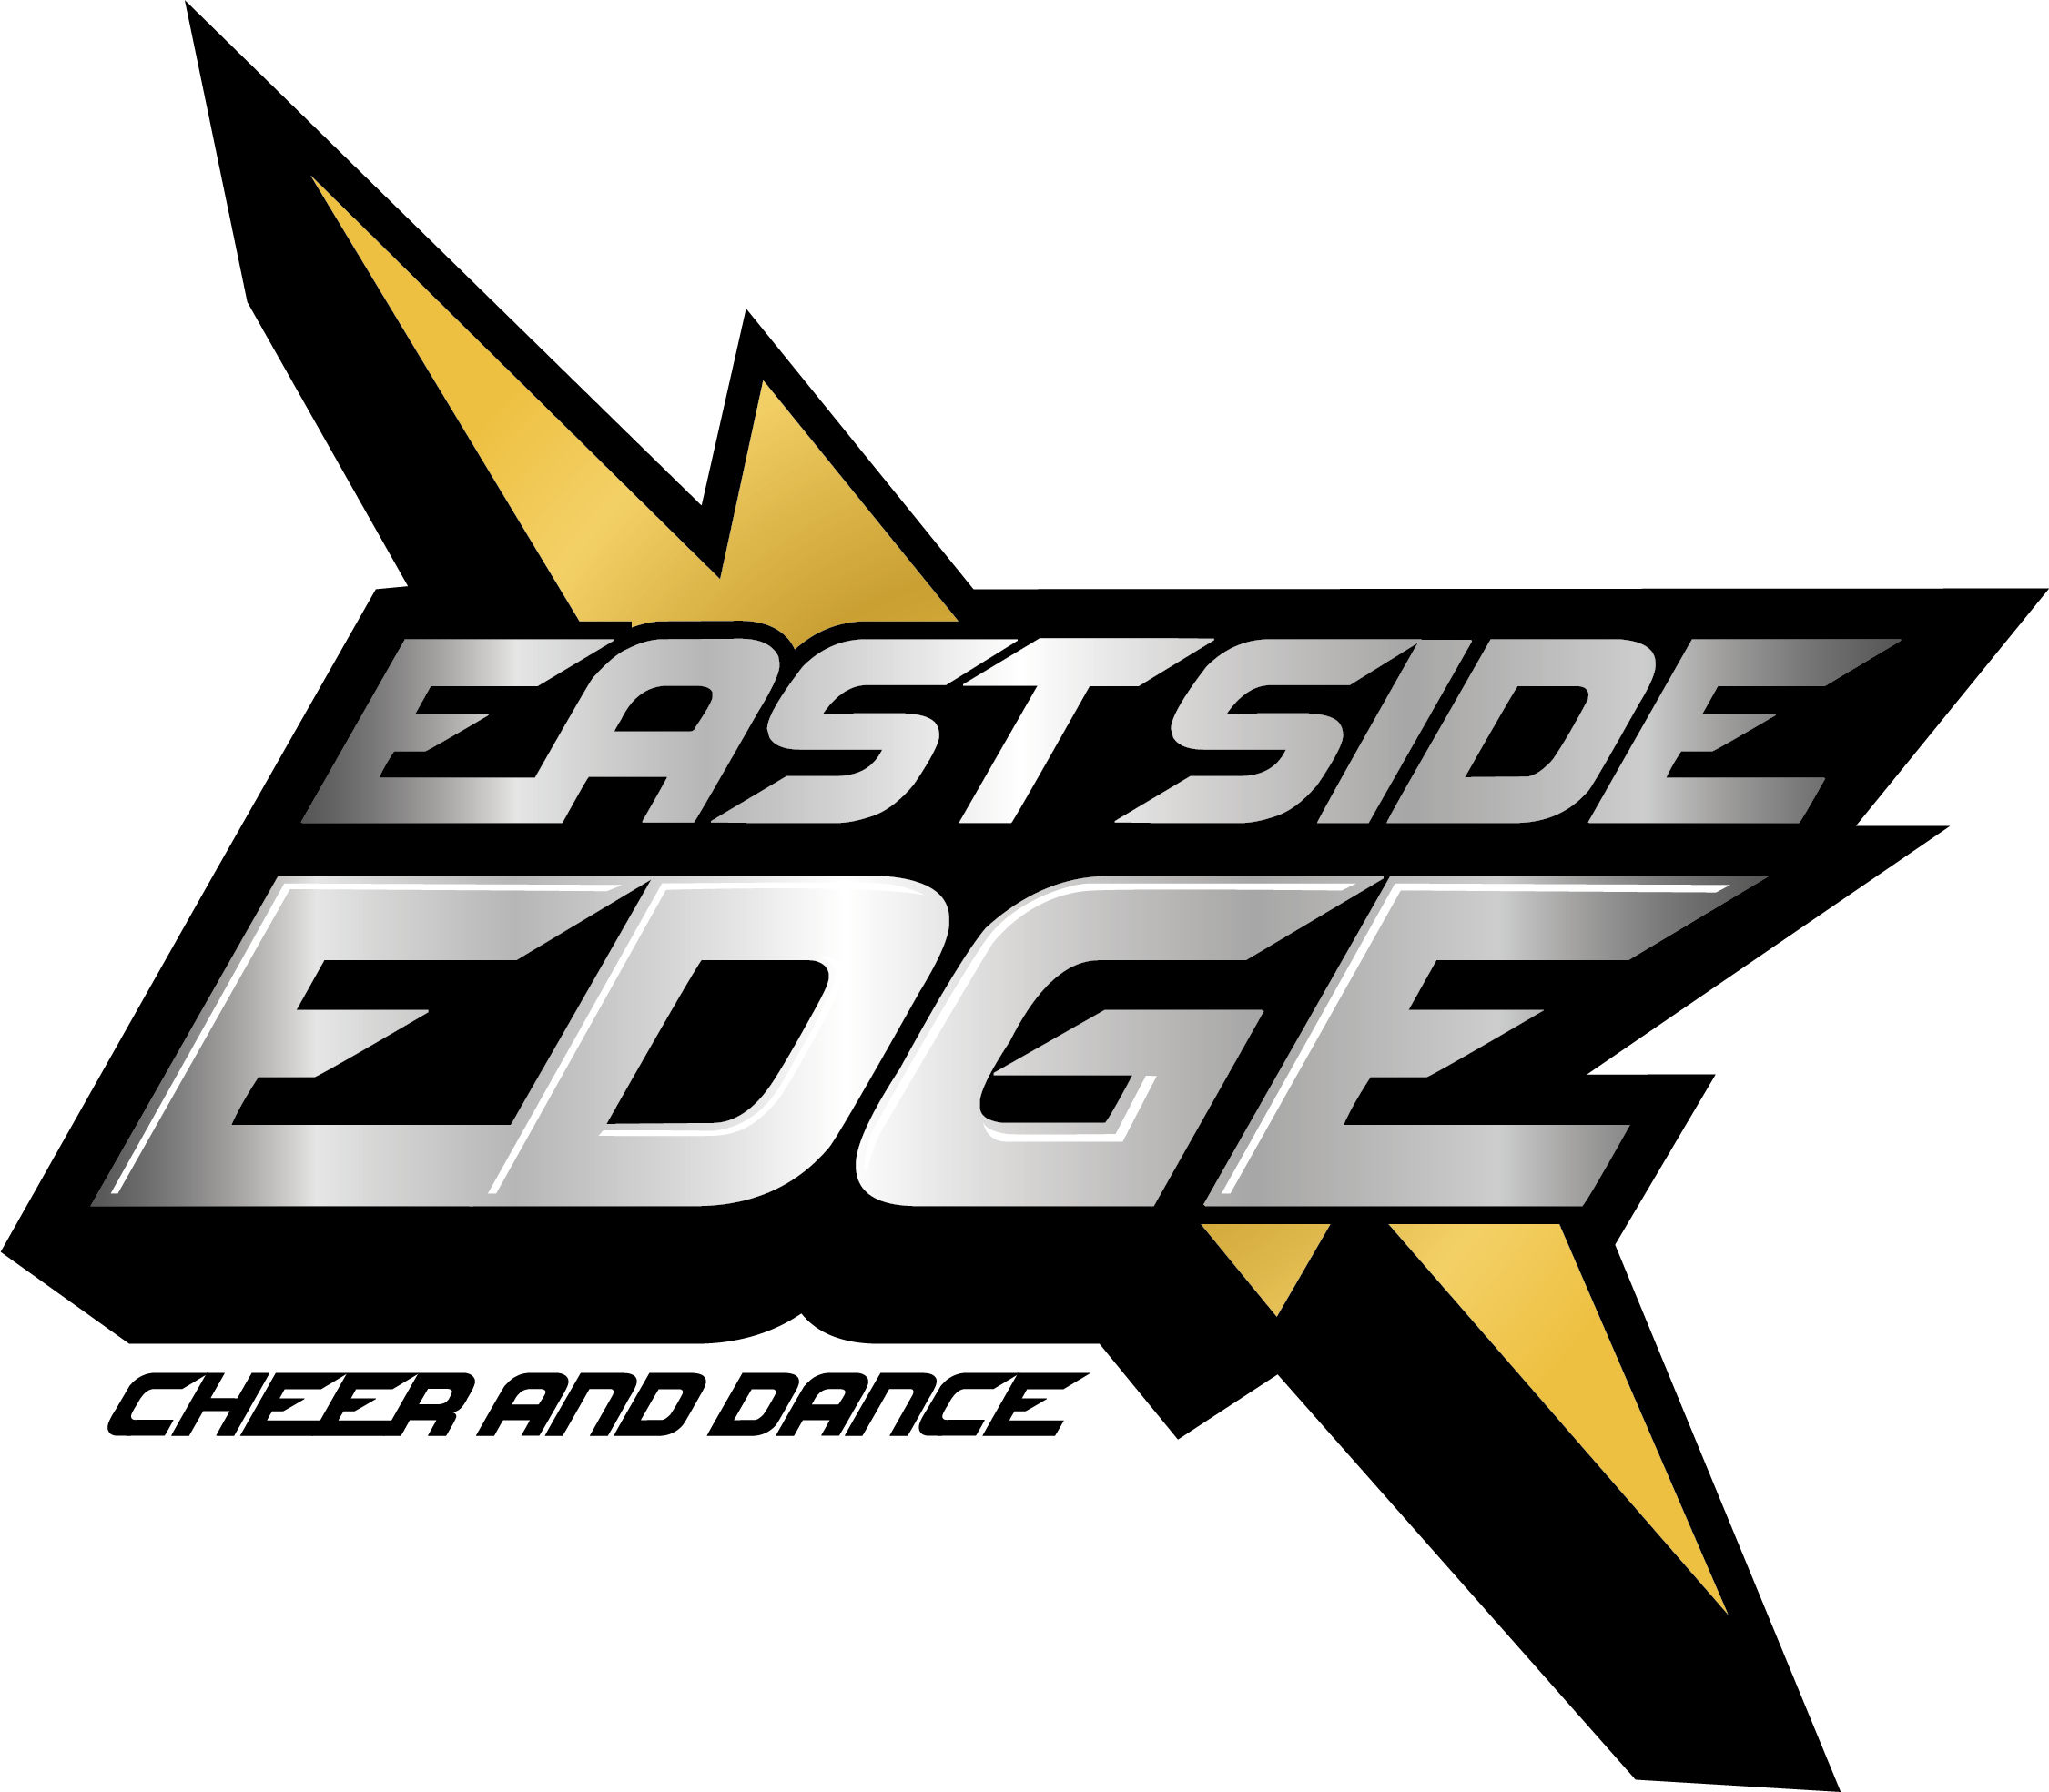 Eastside Edge